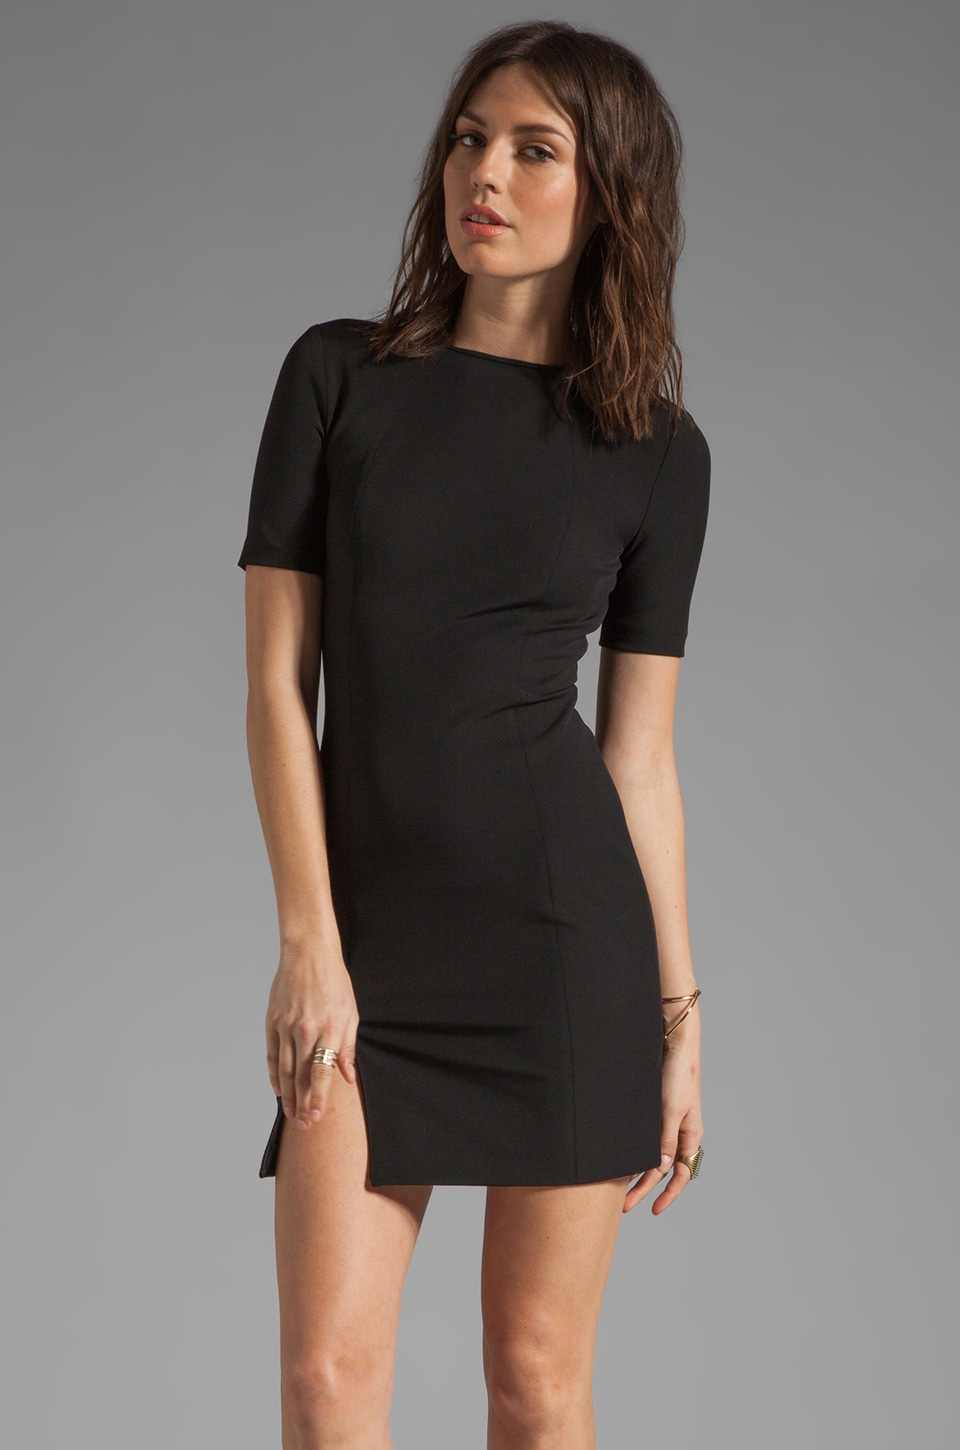 T by Alexander Wang Tech Suiting Fitting Dress in Black